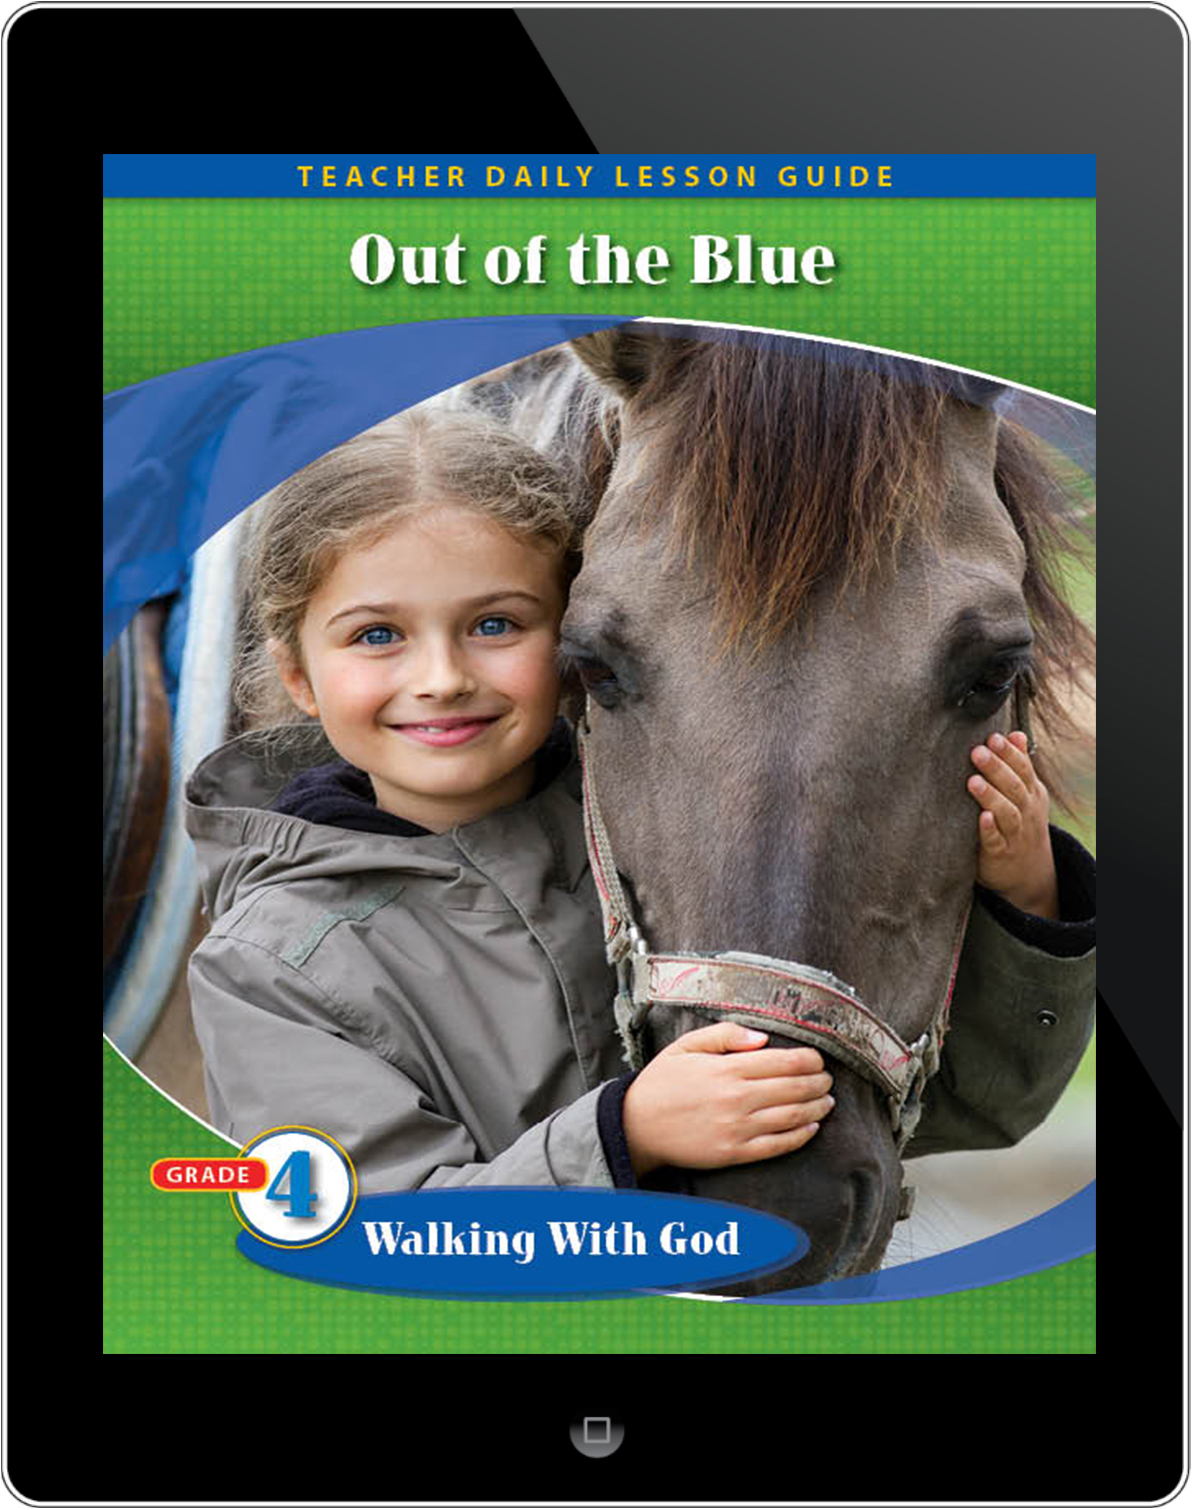 Pathways2.0 Grade 4 Walking with God Unit: Out of the Blue Daily Lesson Guide 5 Year License